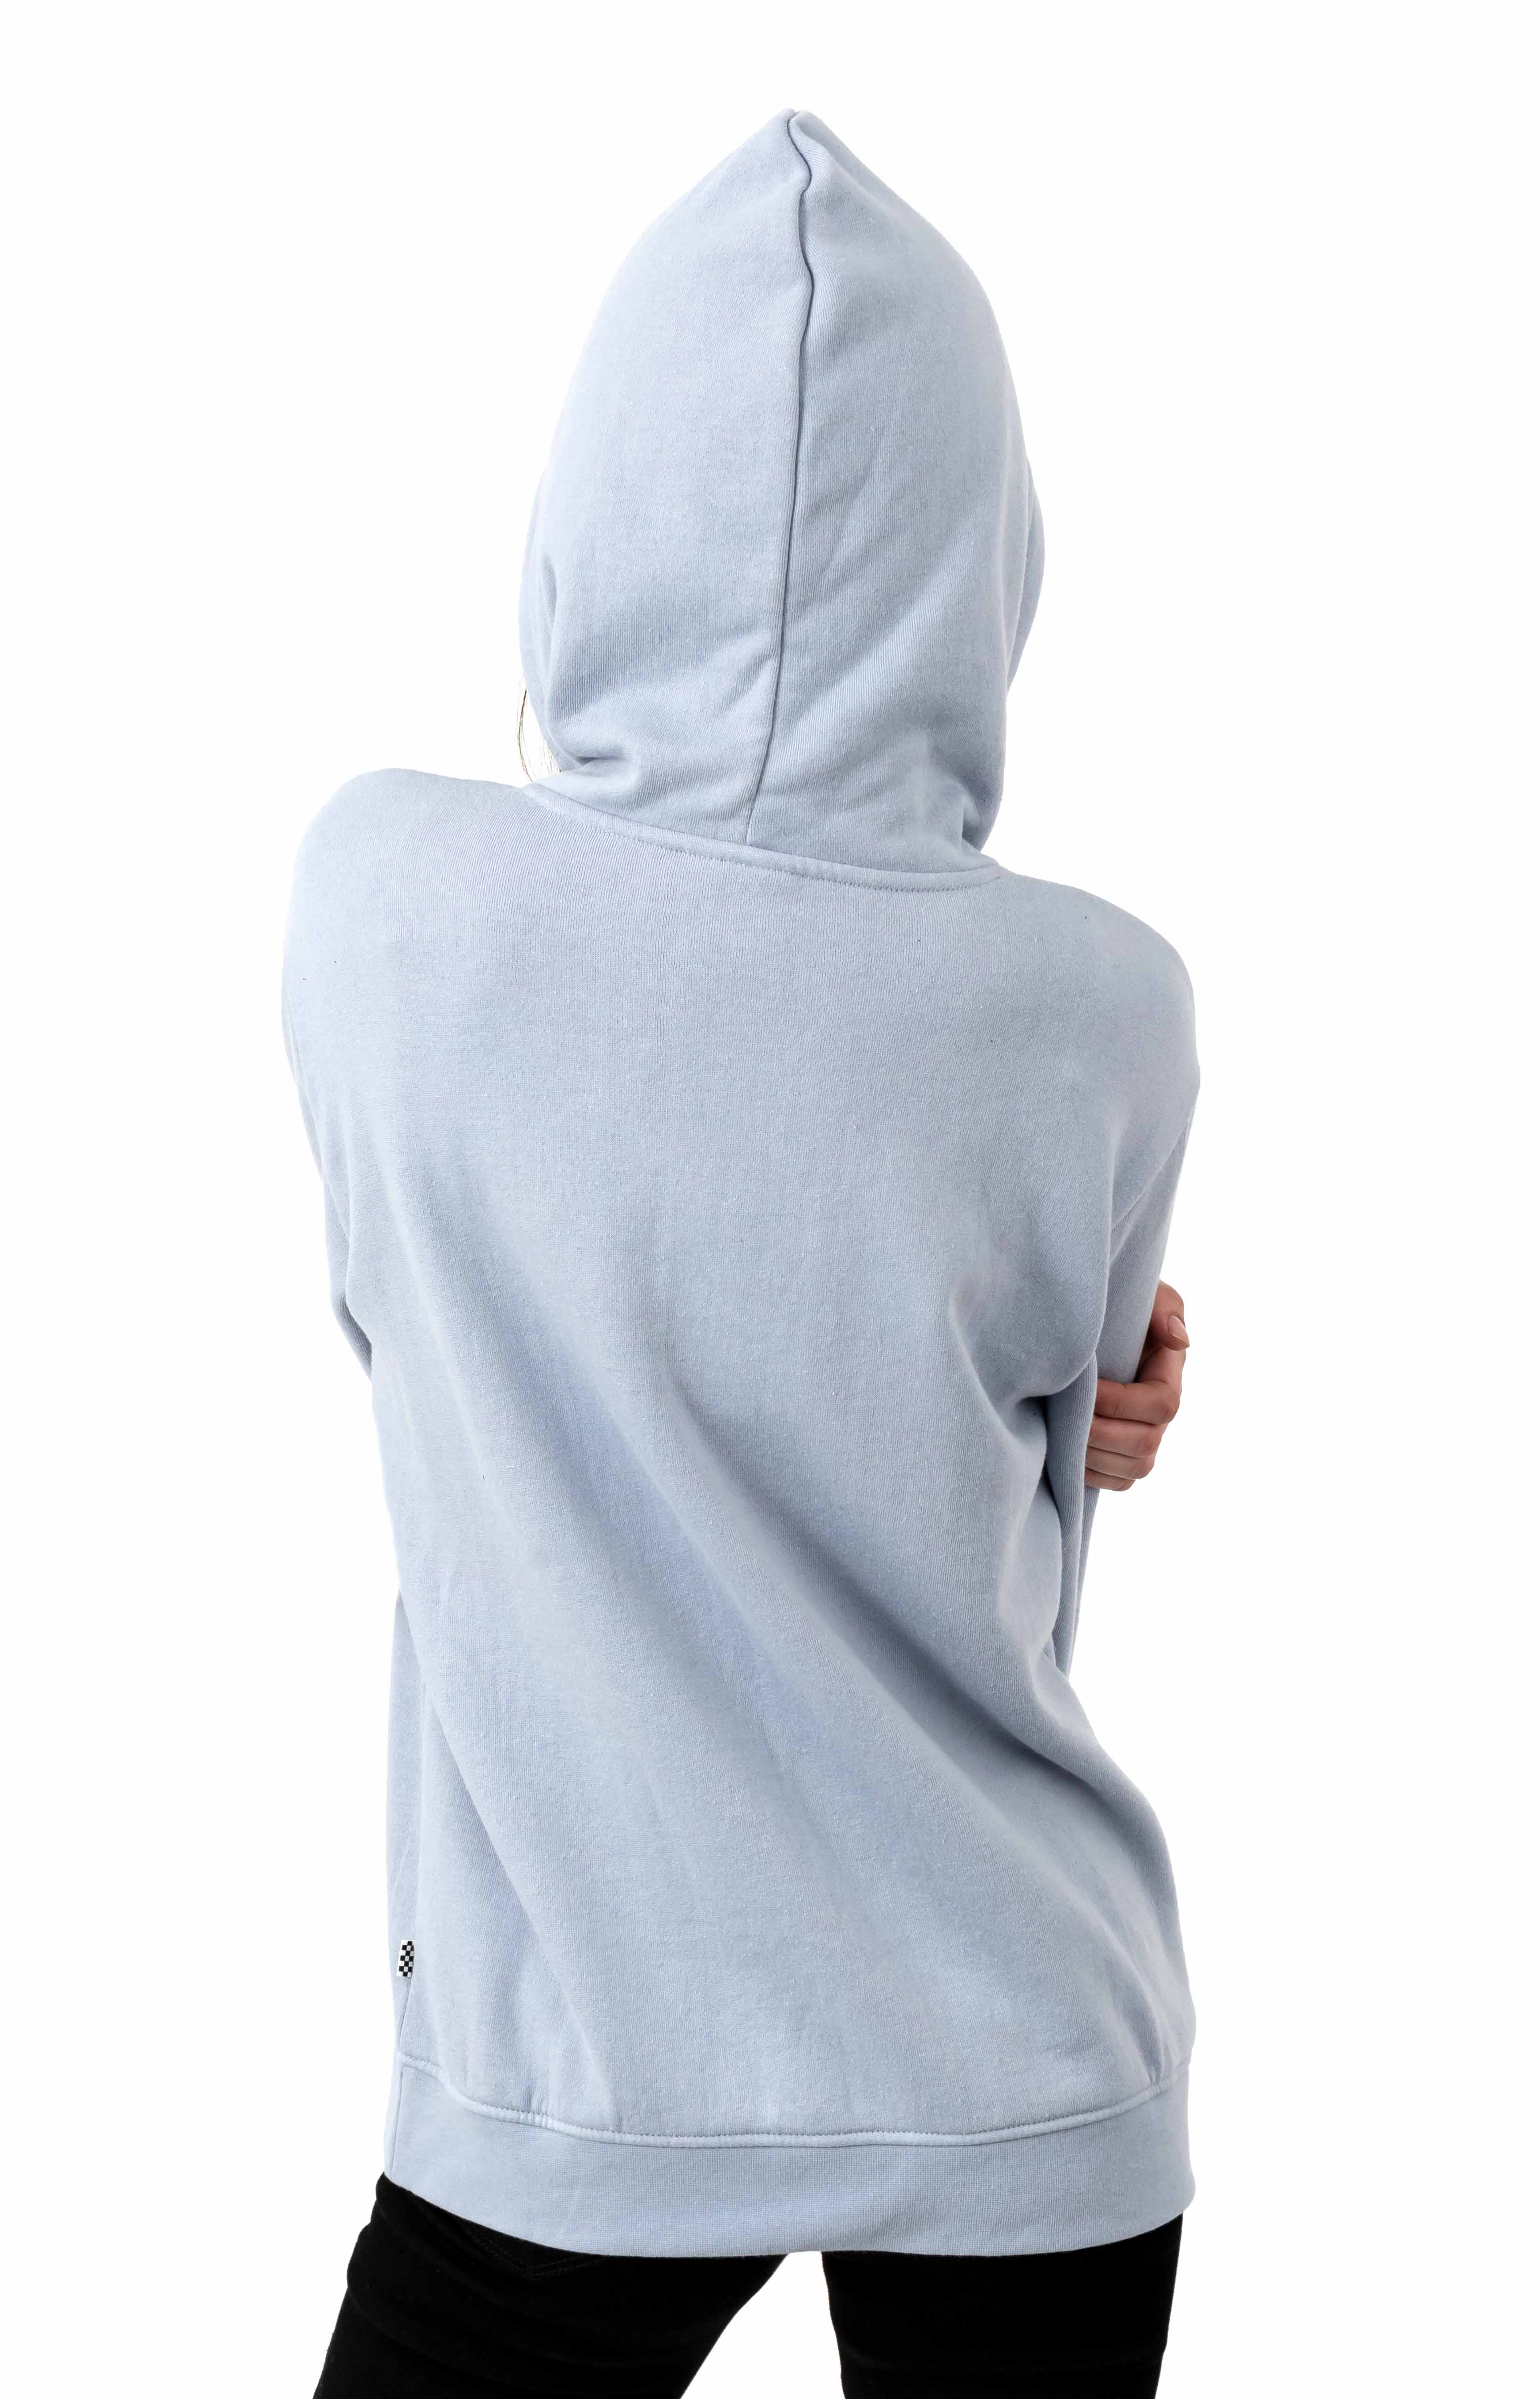 Labeled BF Pullover Hoodie - Zen Blue 3